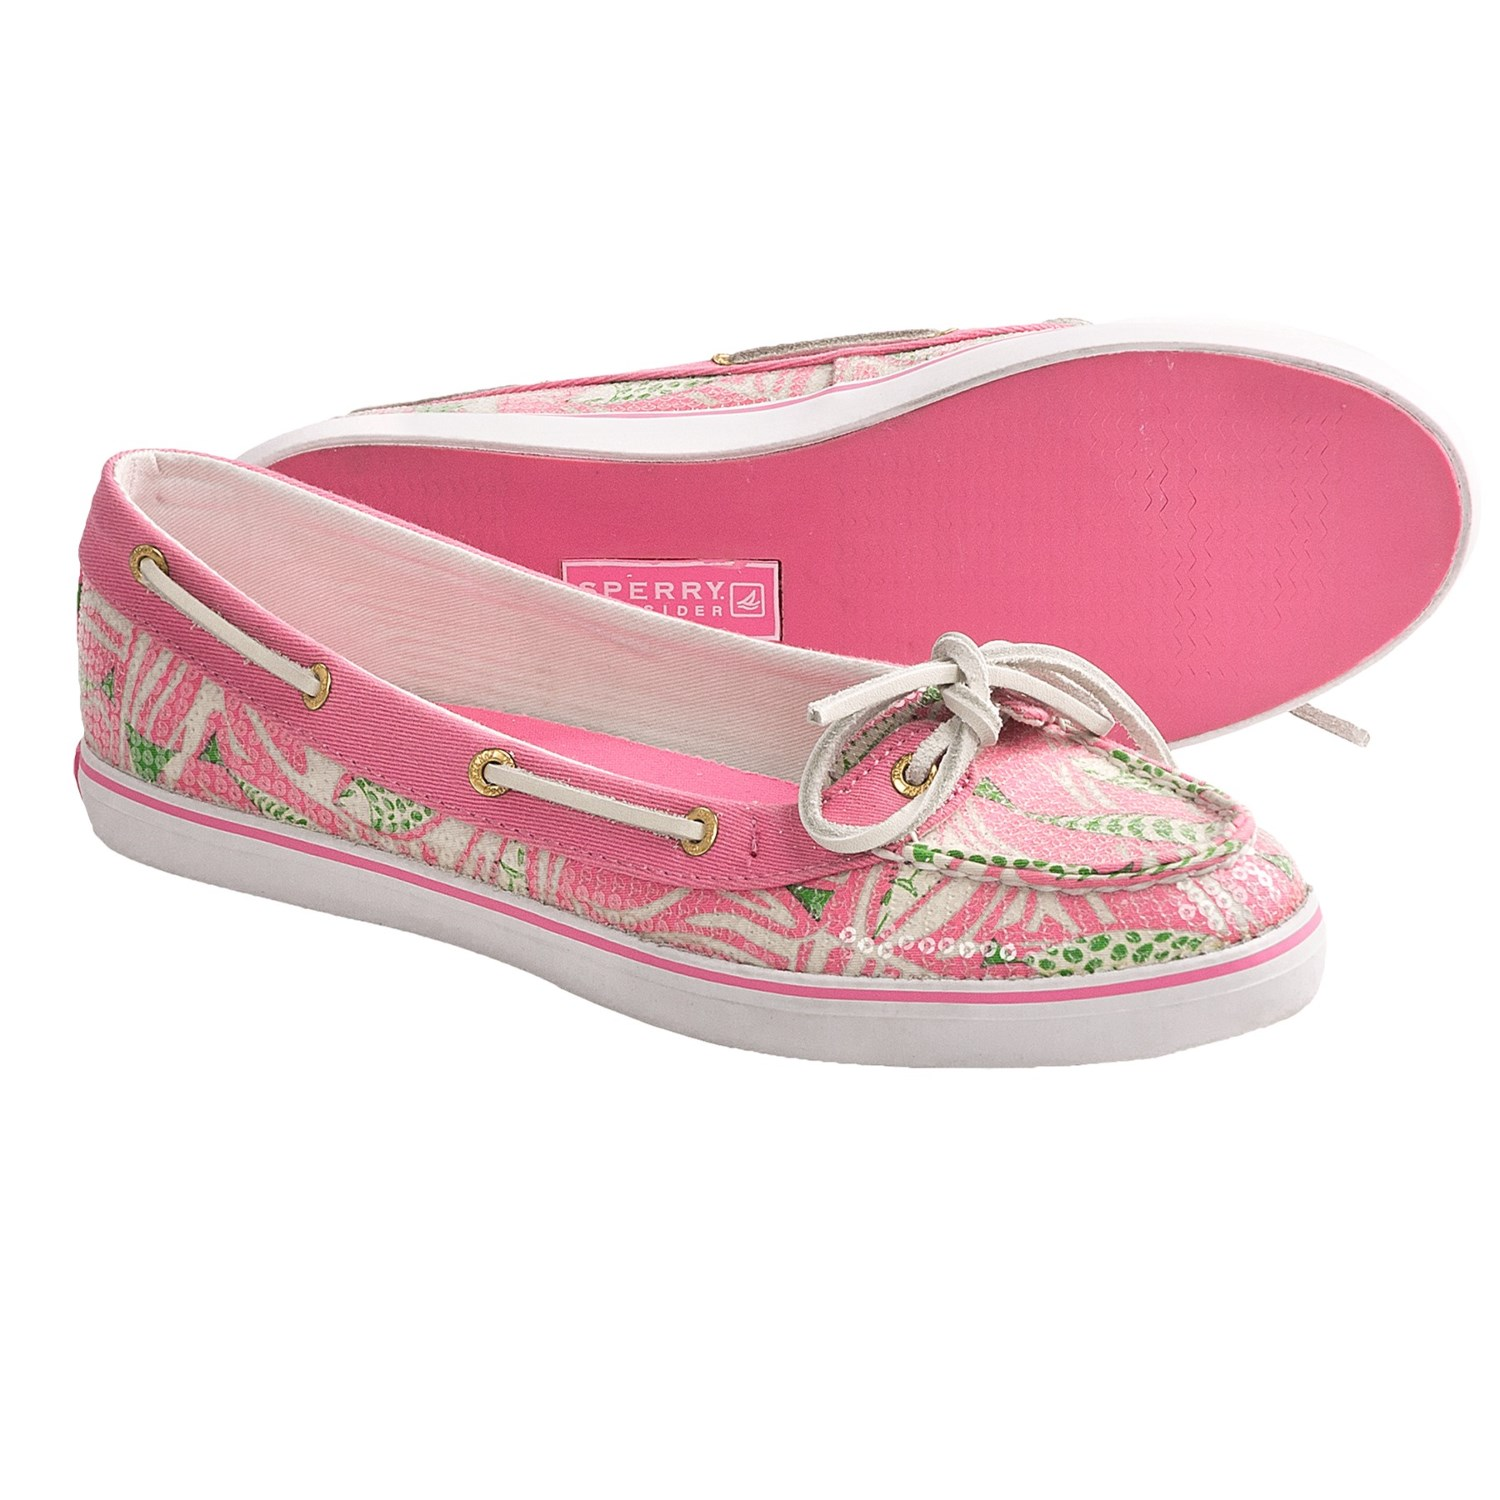 Sperry Top-Sider Bahama 2-Eye Women's Boat Shoes